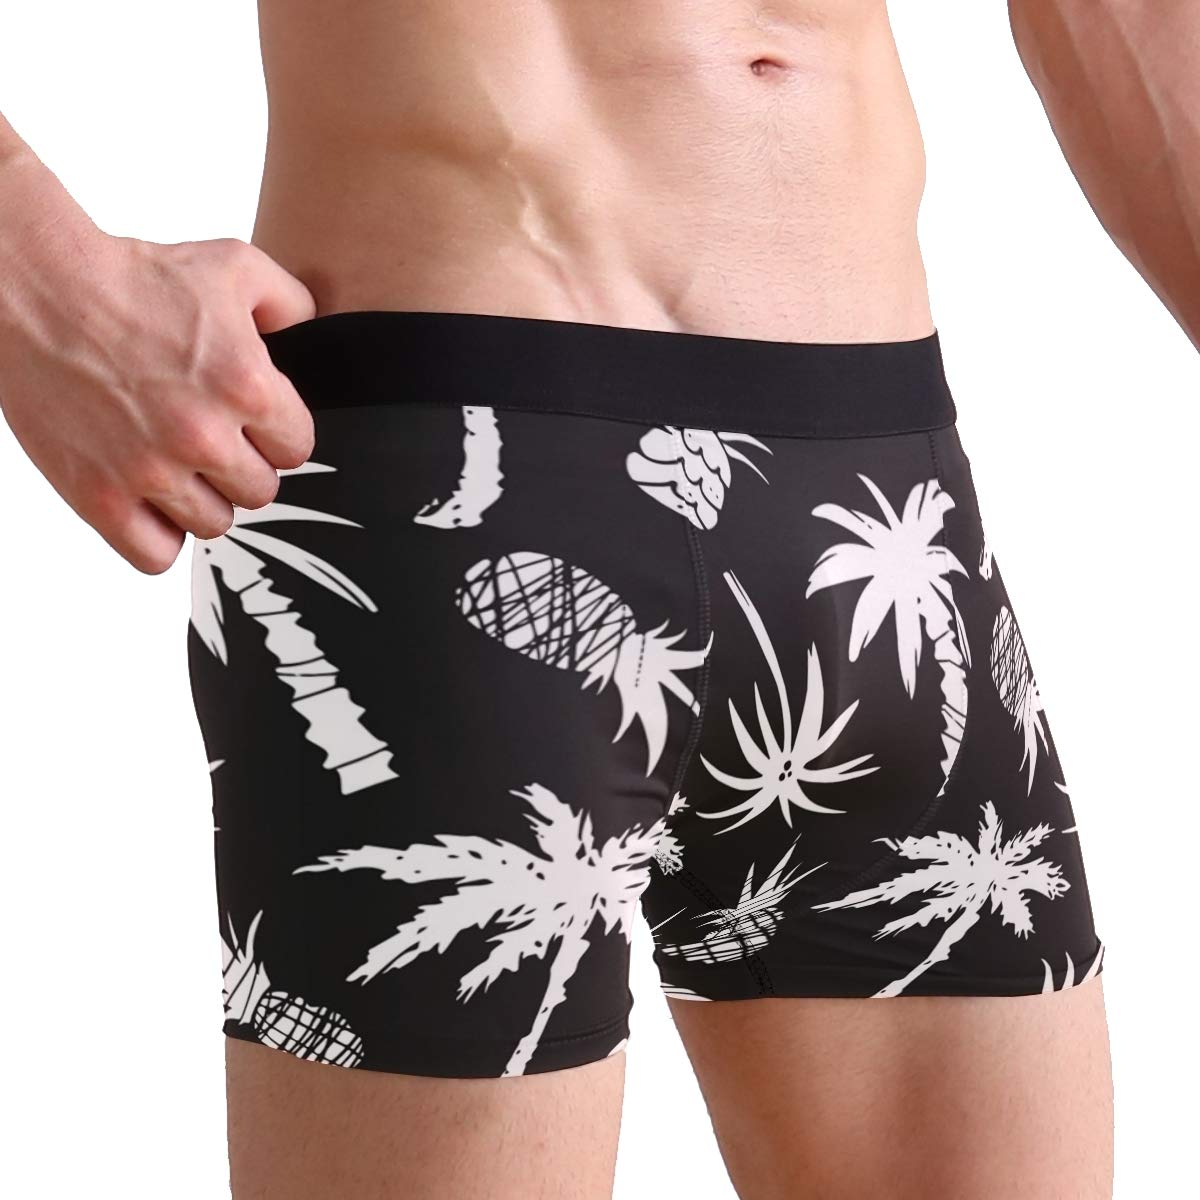 CATSDER Coconut Palm Tree Pineapple Fruit Black Boxer Briefs Mens Underwear Pack Seamless Comfort Soft